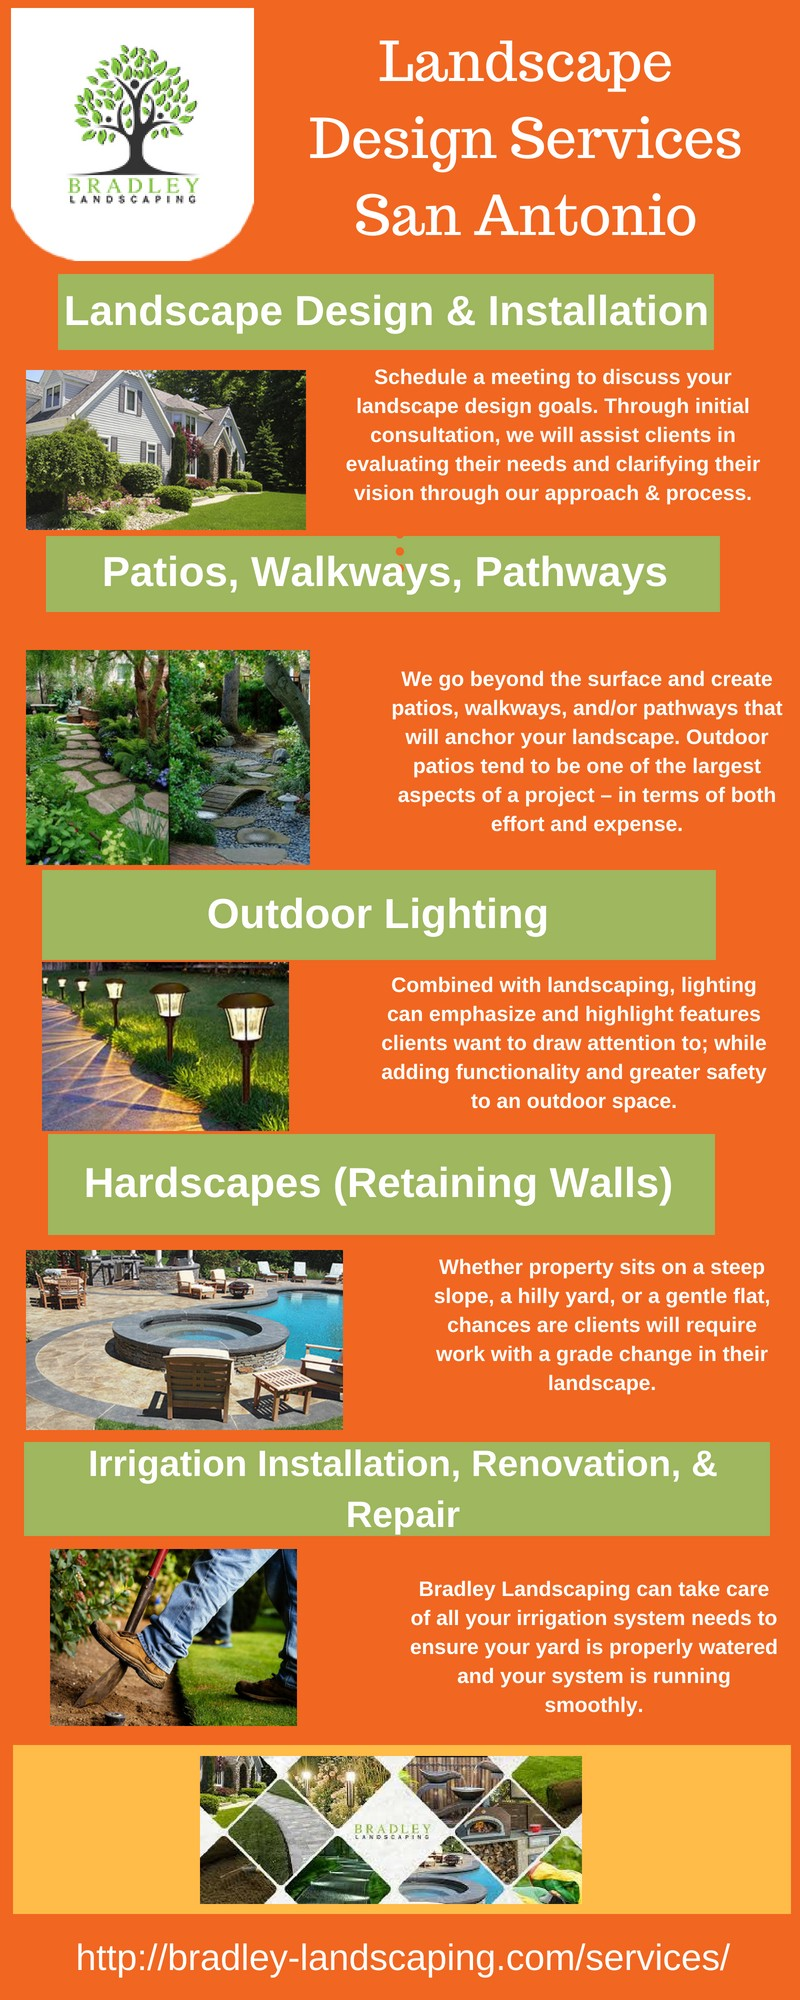 We offer a complete array of Landscaping Services, we have the experts you  are looking for to help create, build, and…bradley-landscaping.com - Landscape Design Services San Antonio — Bradley Landscaping